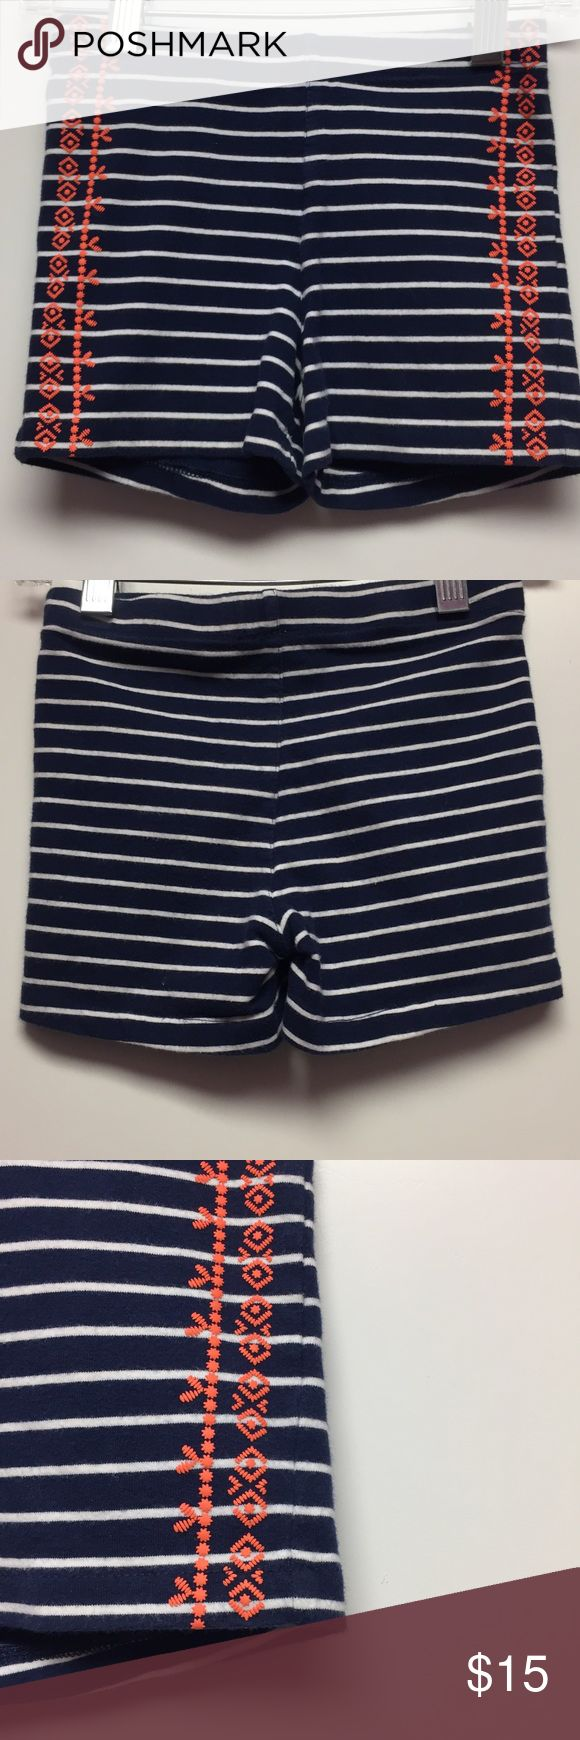 Crew Cuts 6 striped shorts j.crew Really cute striped shorts with orange detailing on the side by Crew Cuts and size 6. Consigned to my boutique no trades. J. Crew Bottoms Shorts